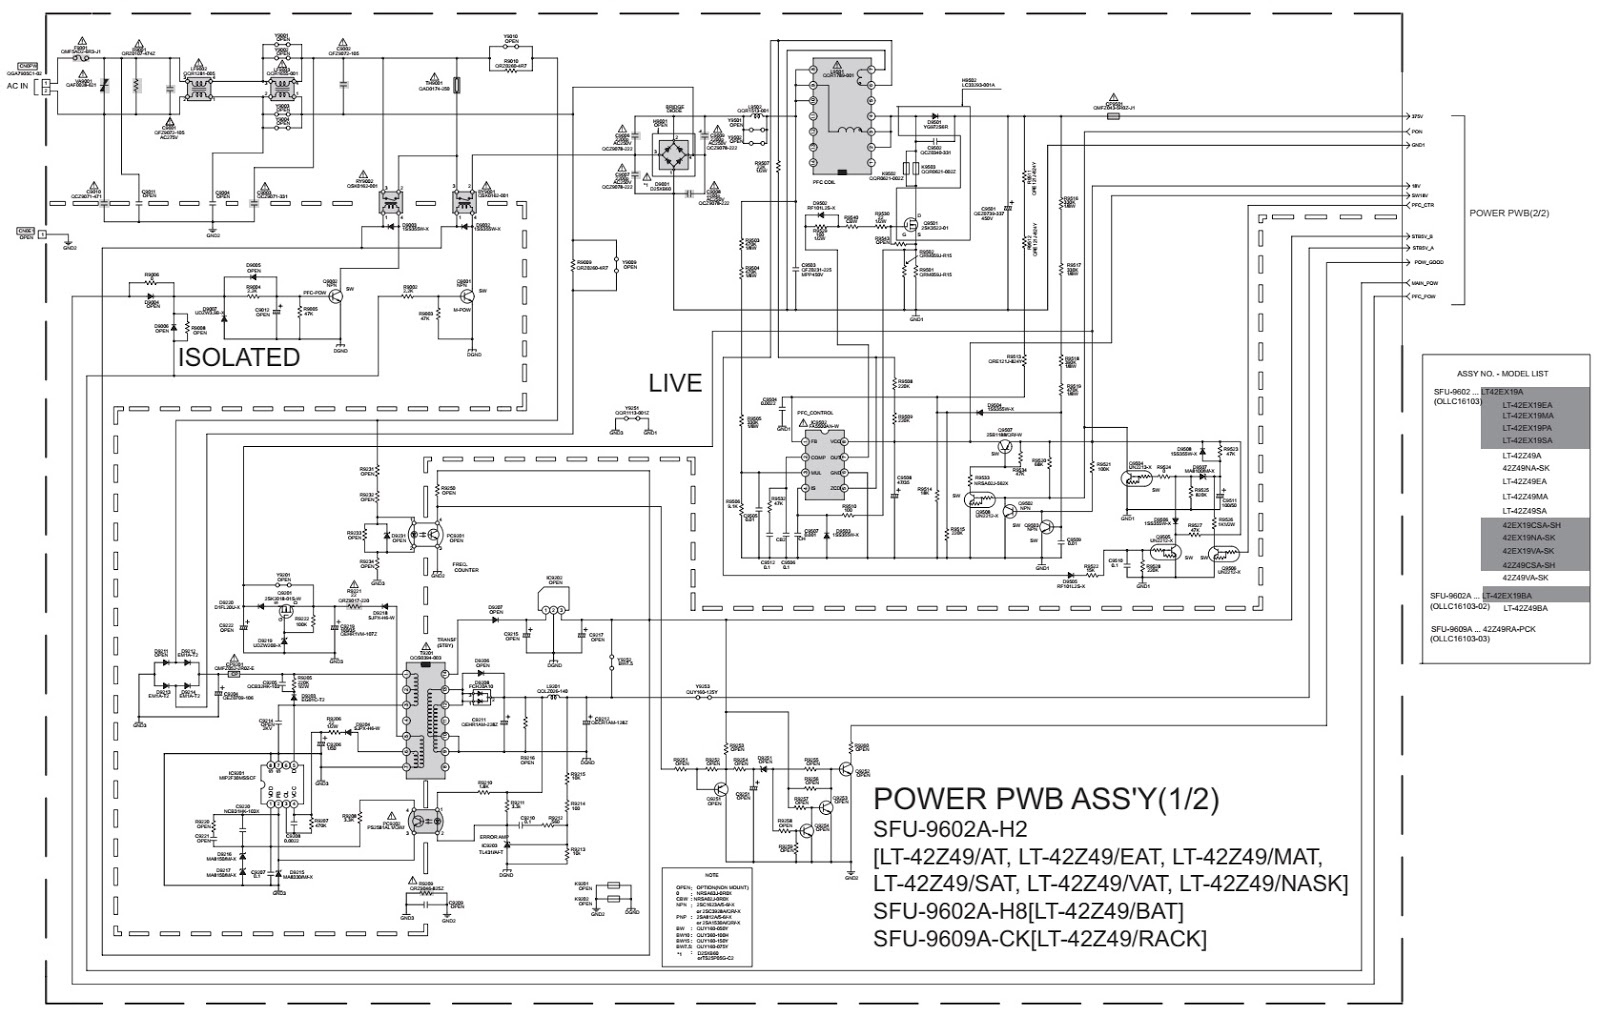 Schematic Diagrams: LT42Z49 JVC LCD TV SMPS schematic